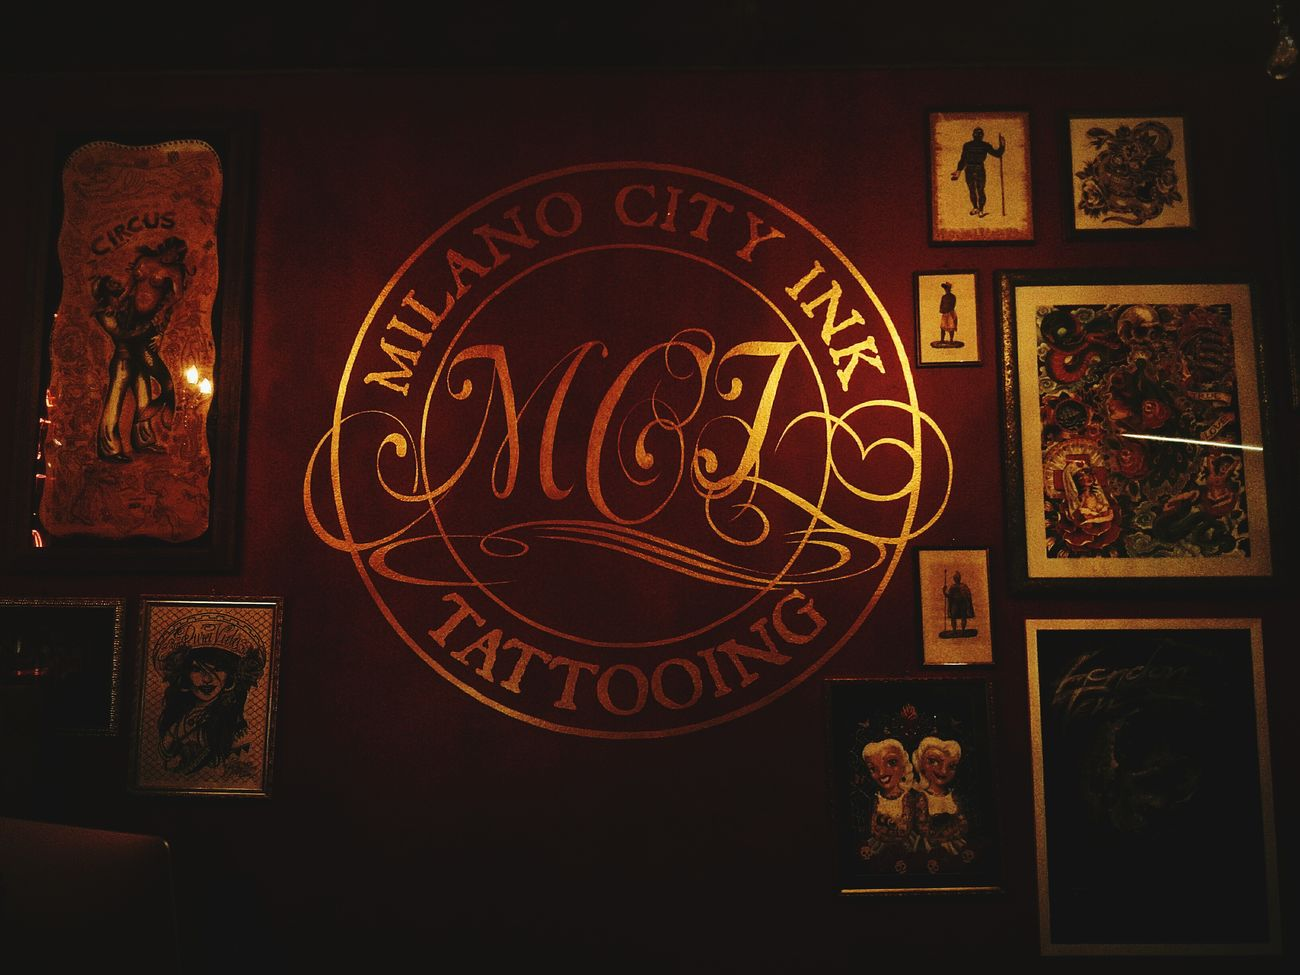 Milanocityink Mcink Tattoos Calligraphy Draw Urbanphotography Randomphotography